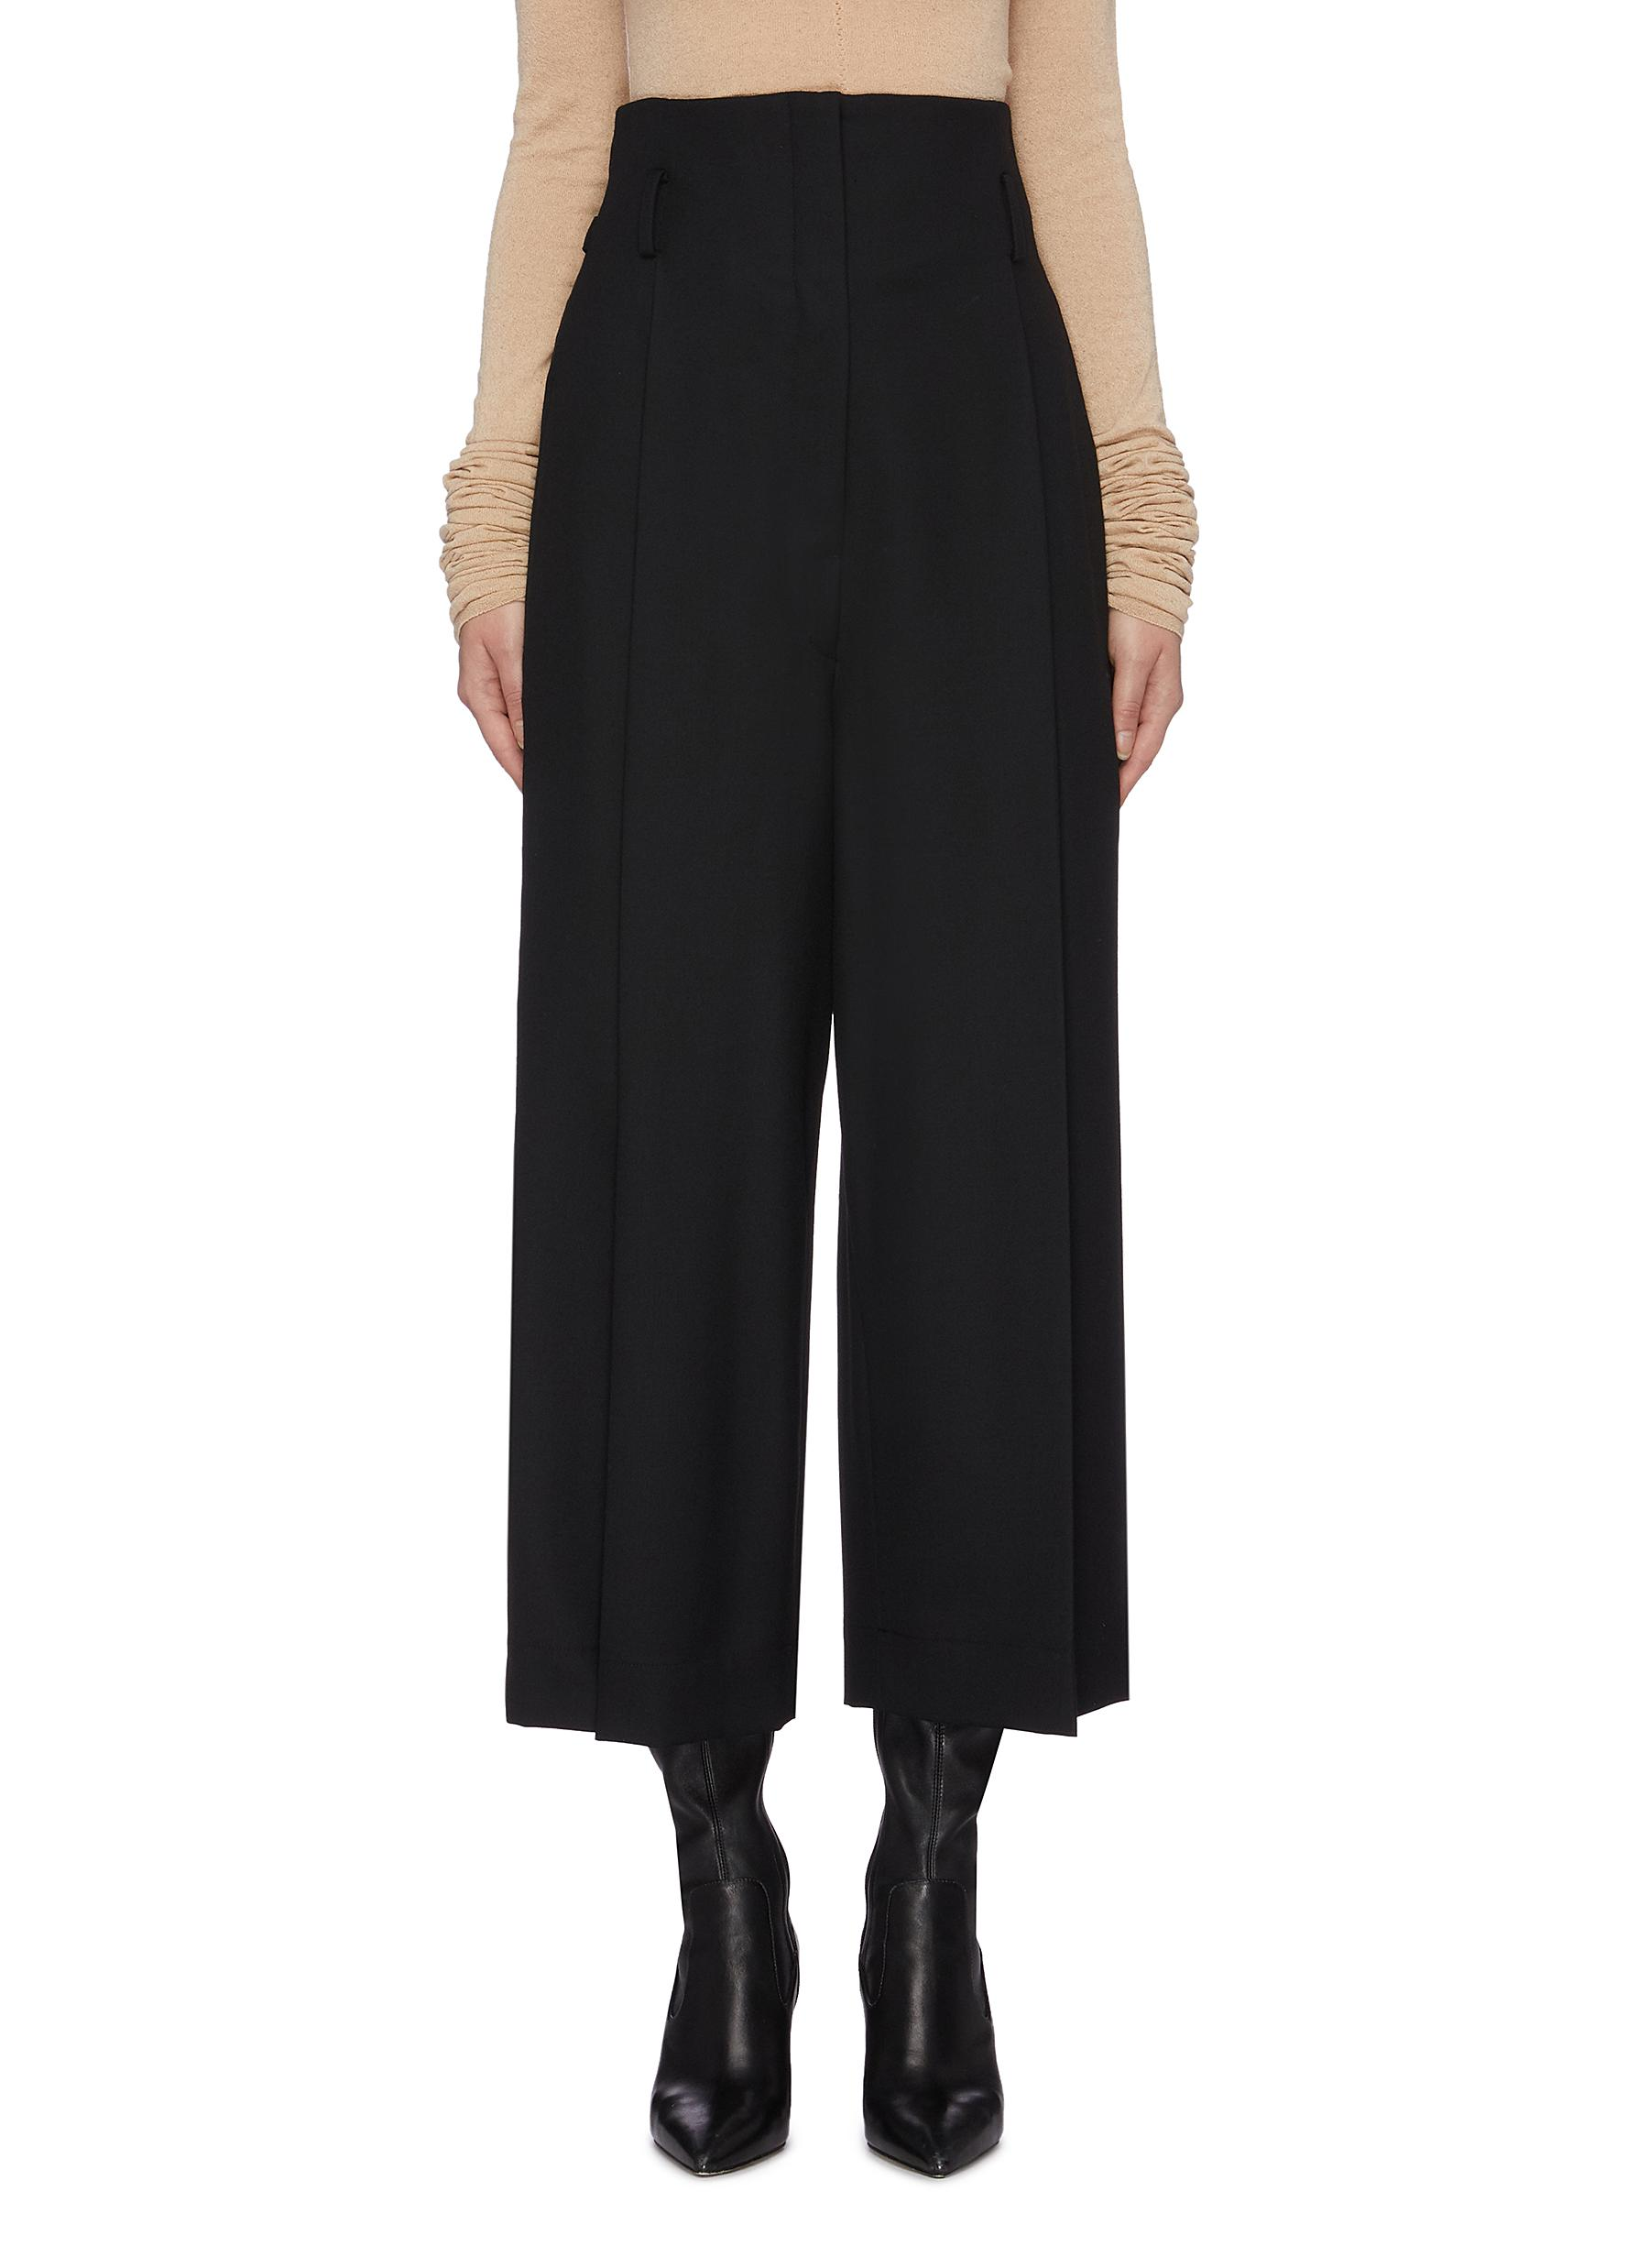 Waist tab pintuck wool wide leg suiting pants by Lemaire